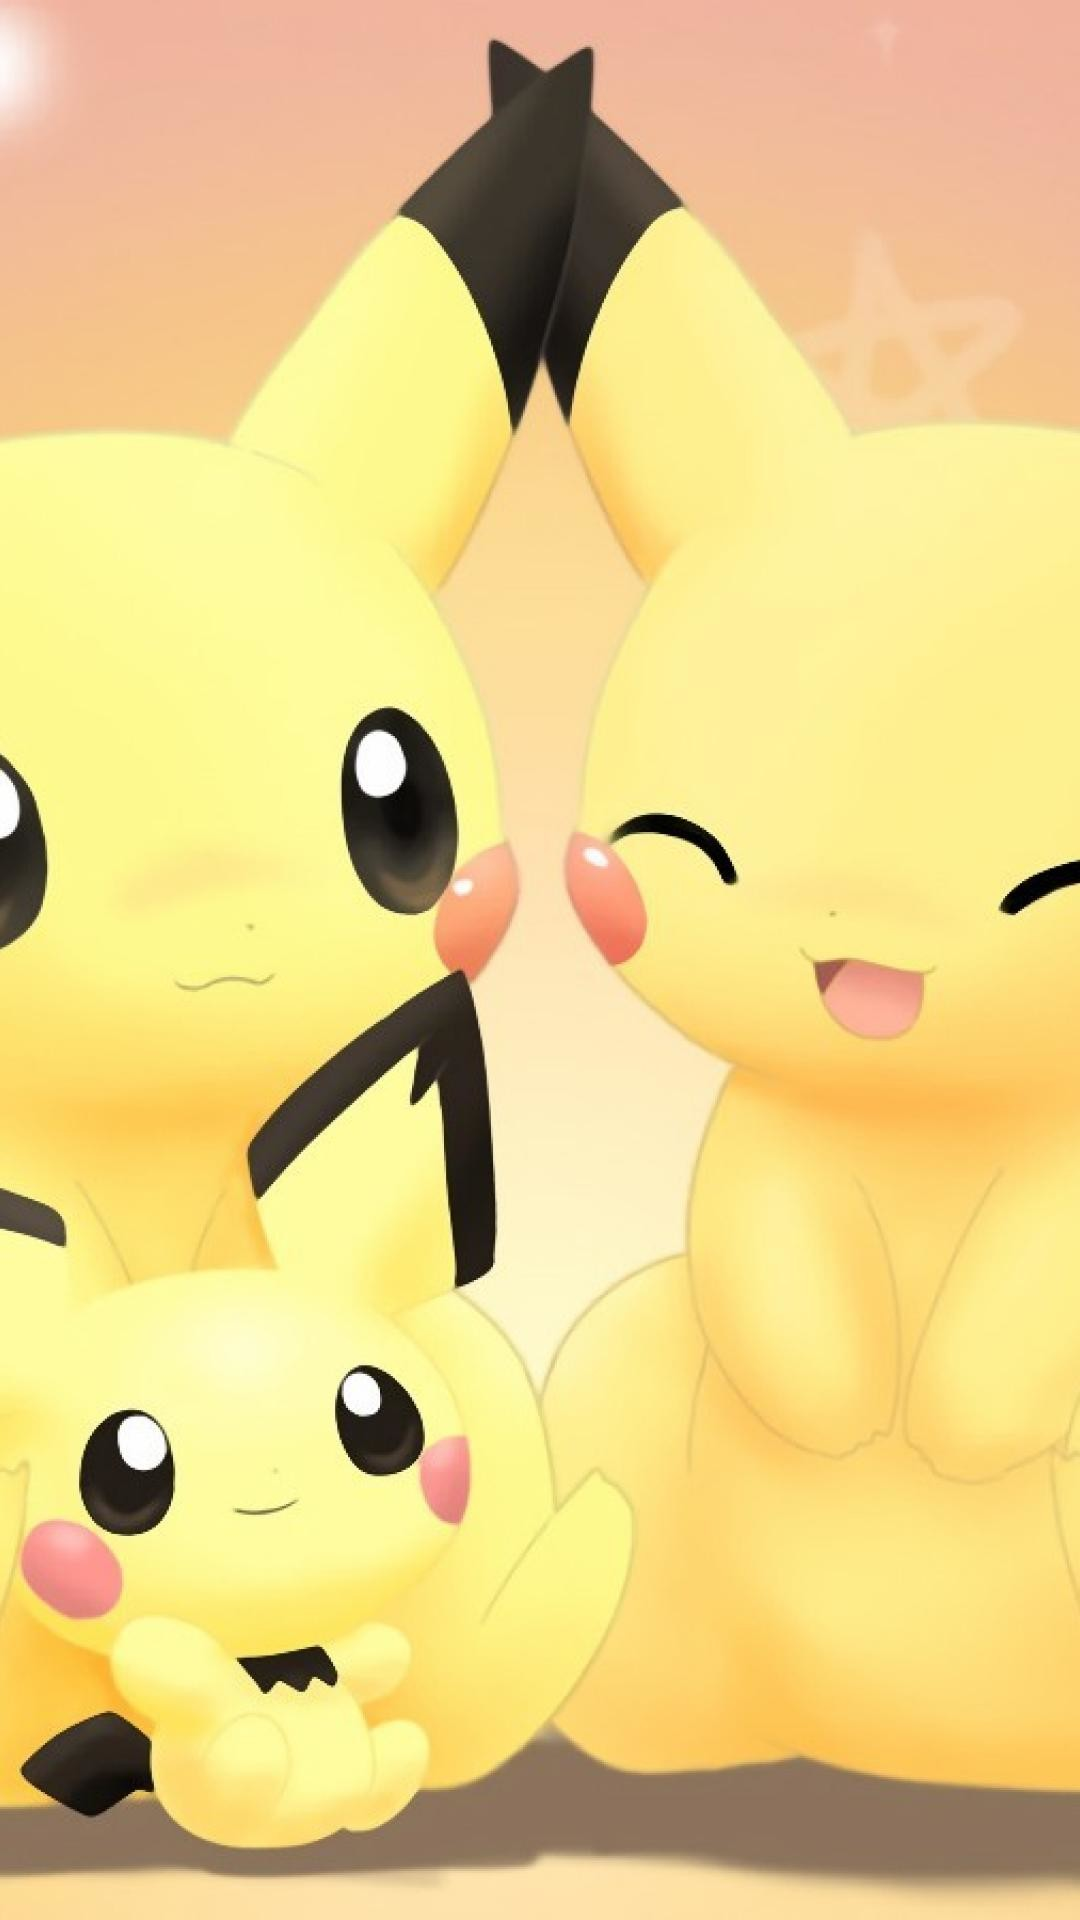 1080x1920 ... pikachu backgrounds wallpaper cave; pokemon iphone wallpaper download  free ...